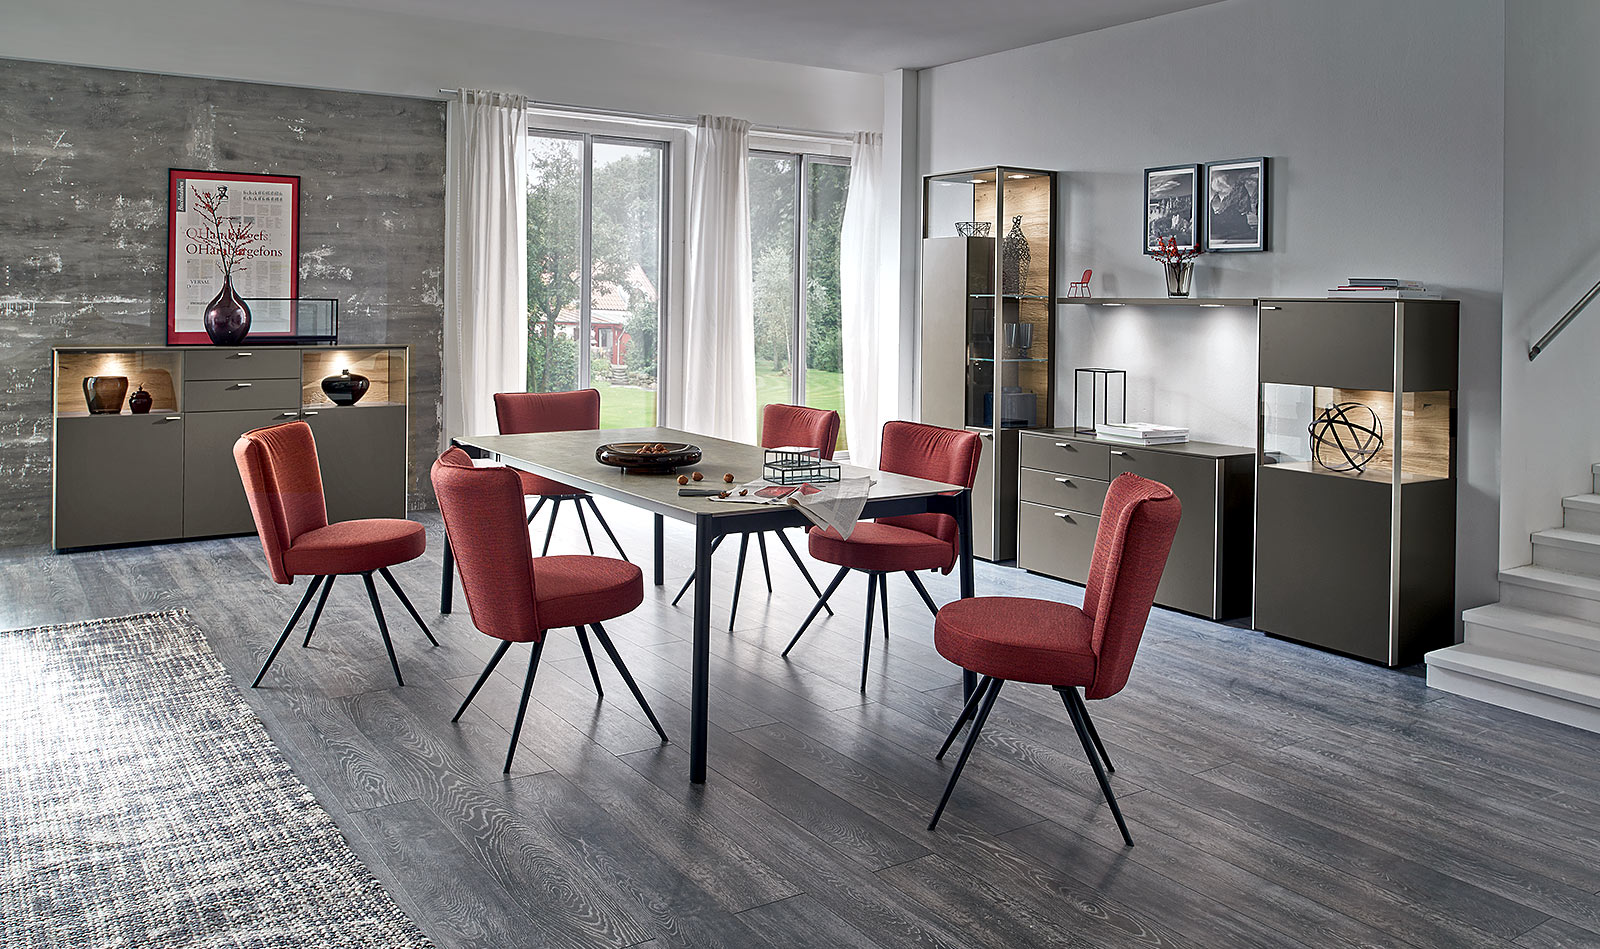 dining table 2366 mio plus chair leva sideboard 1852 recommendation se72